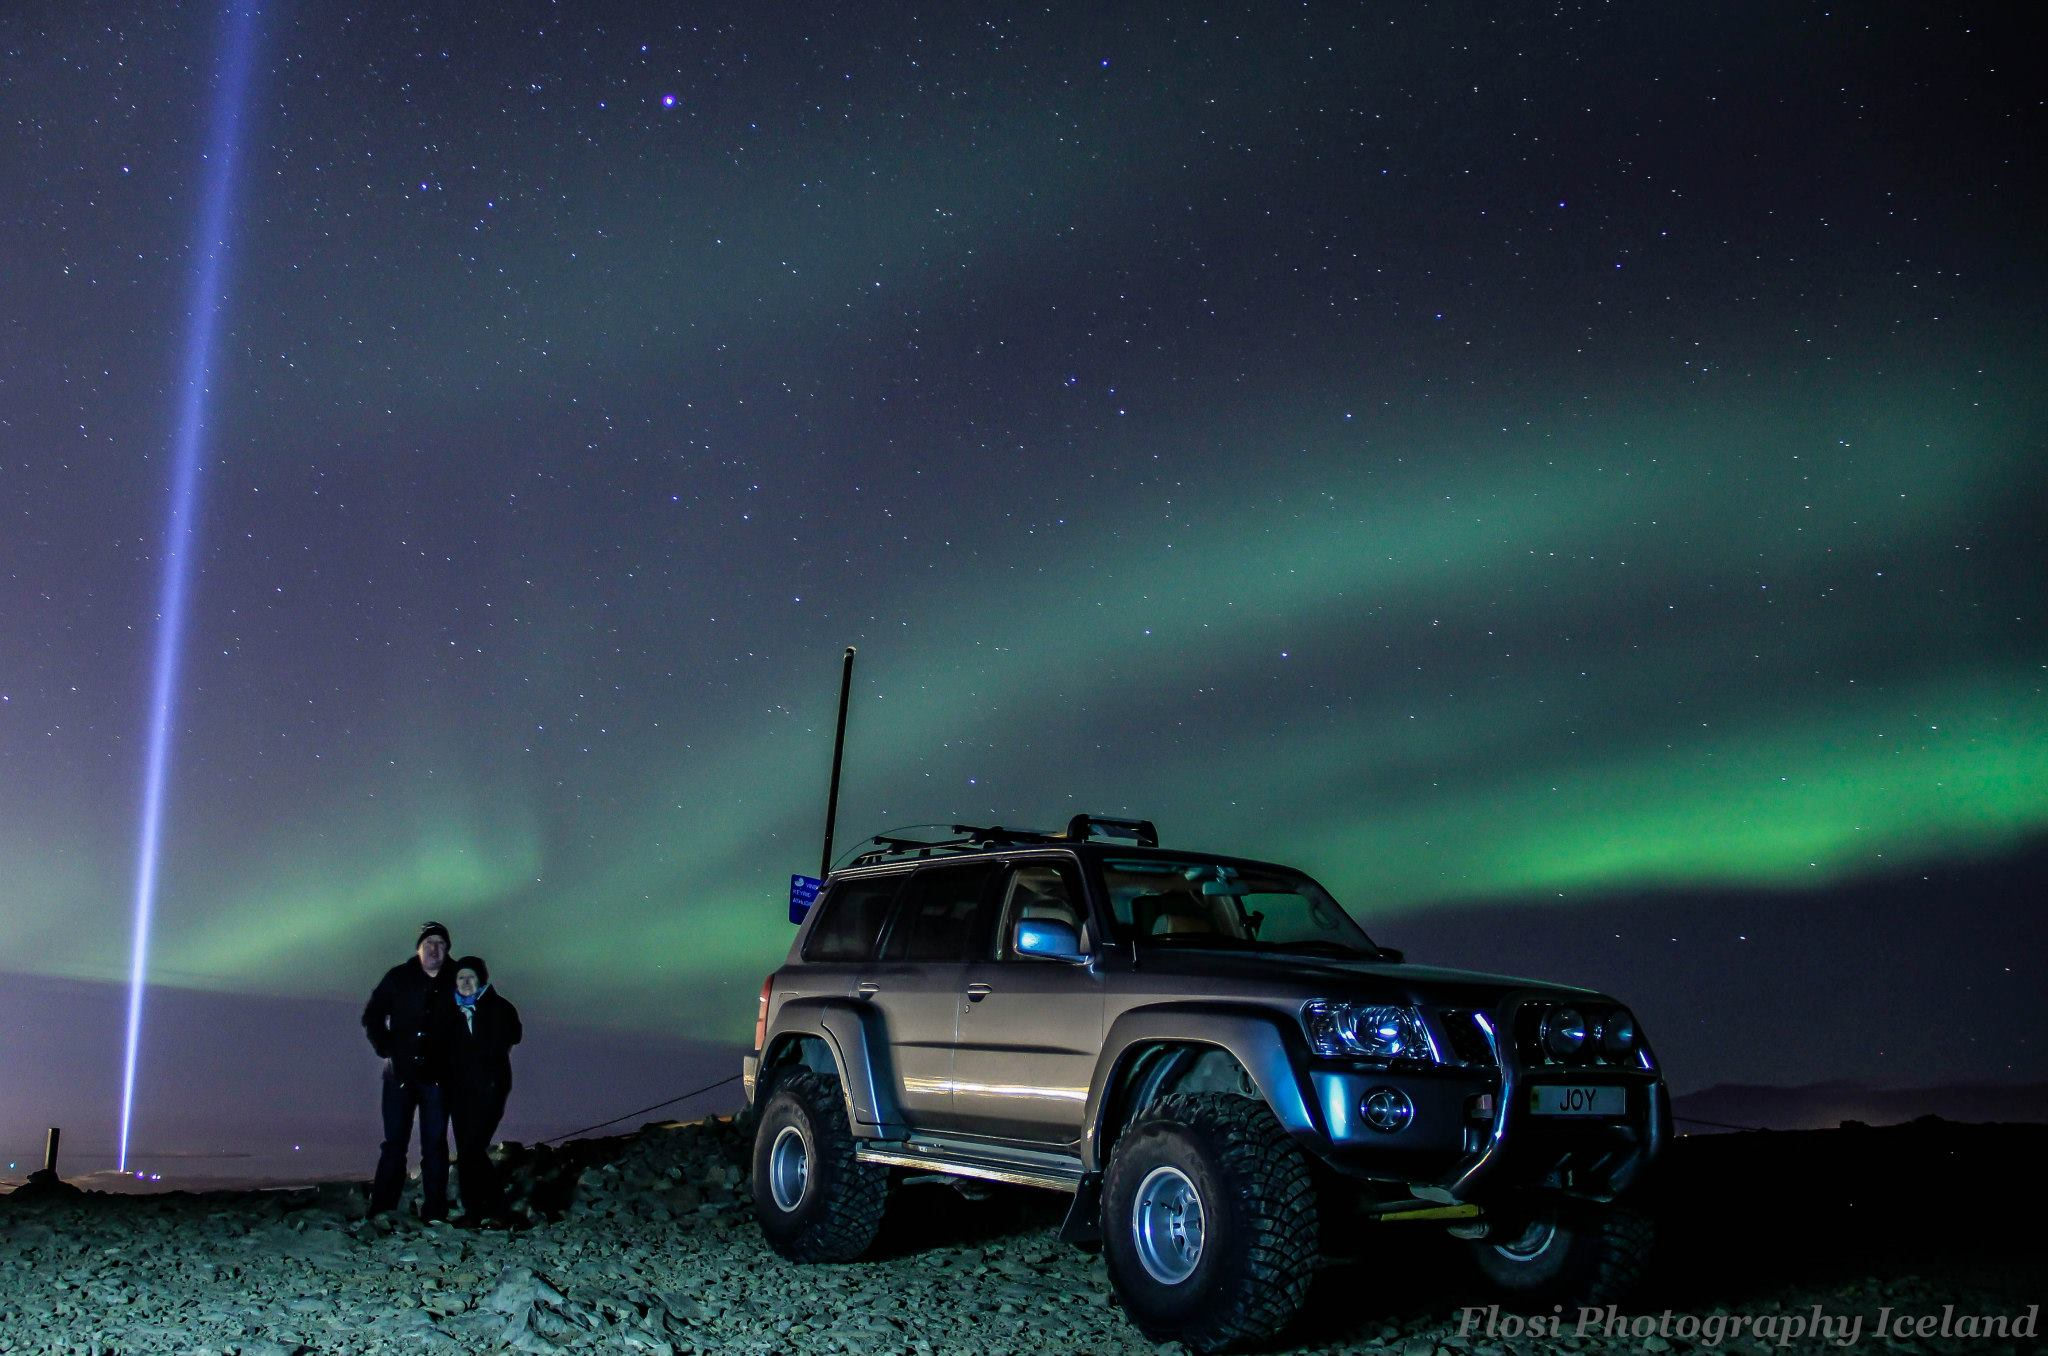 Lights_Flosi Photography, Discover Iceland.jpg